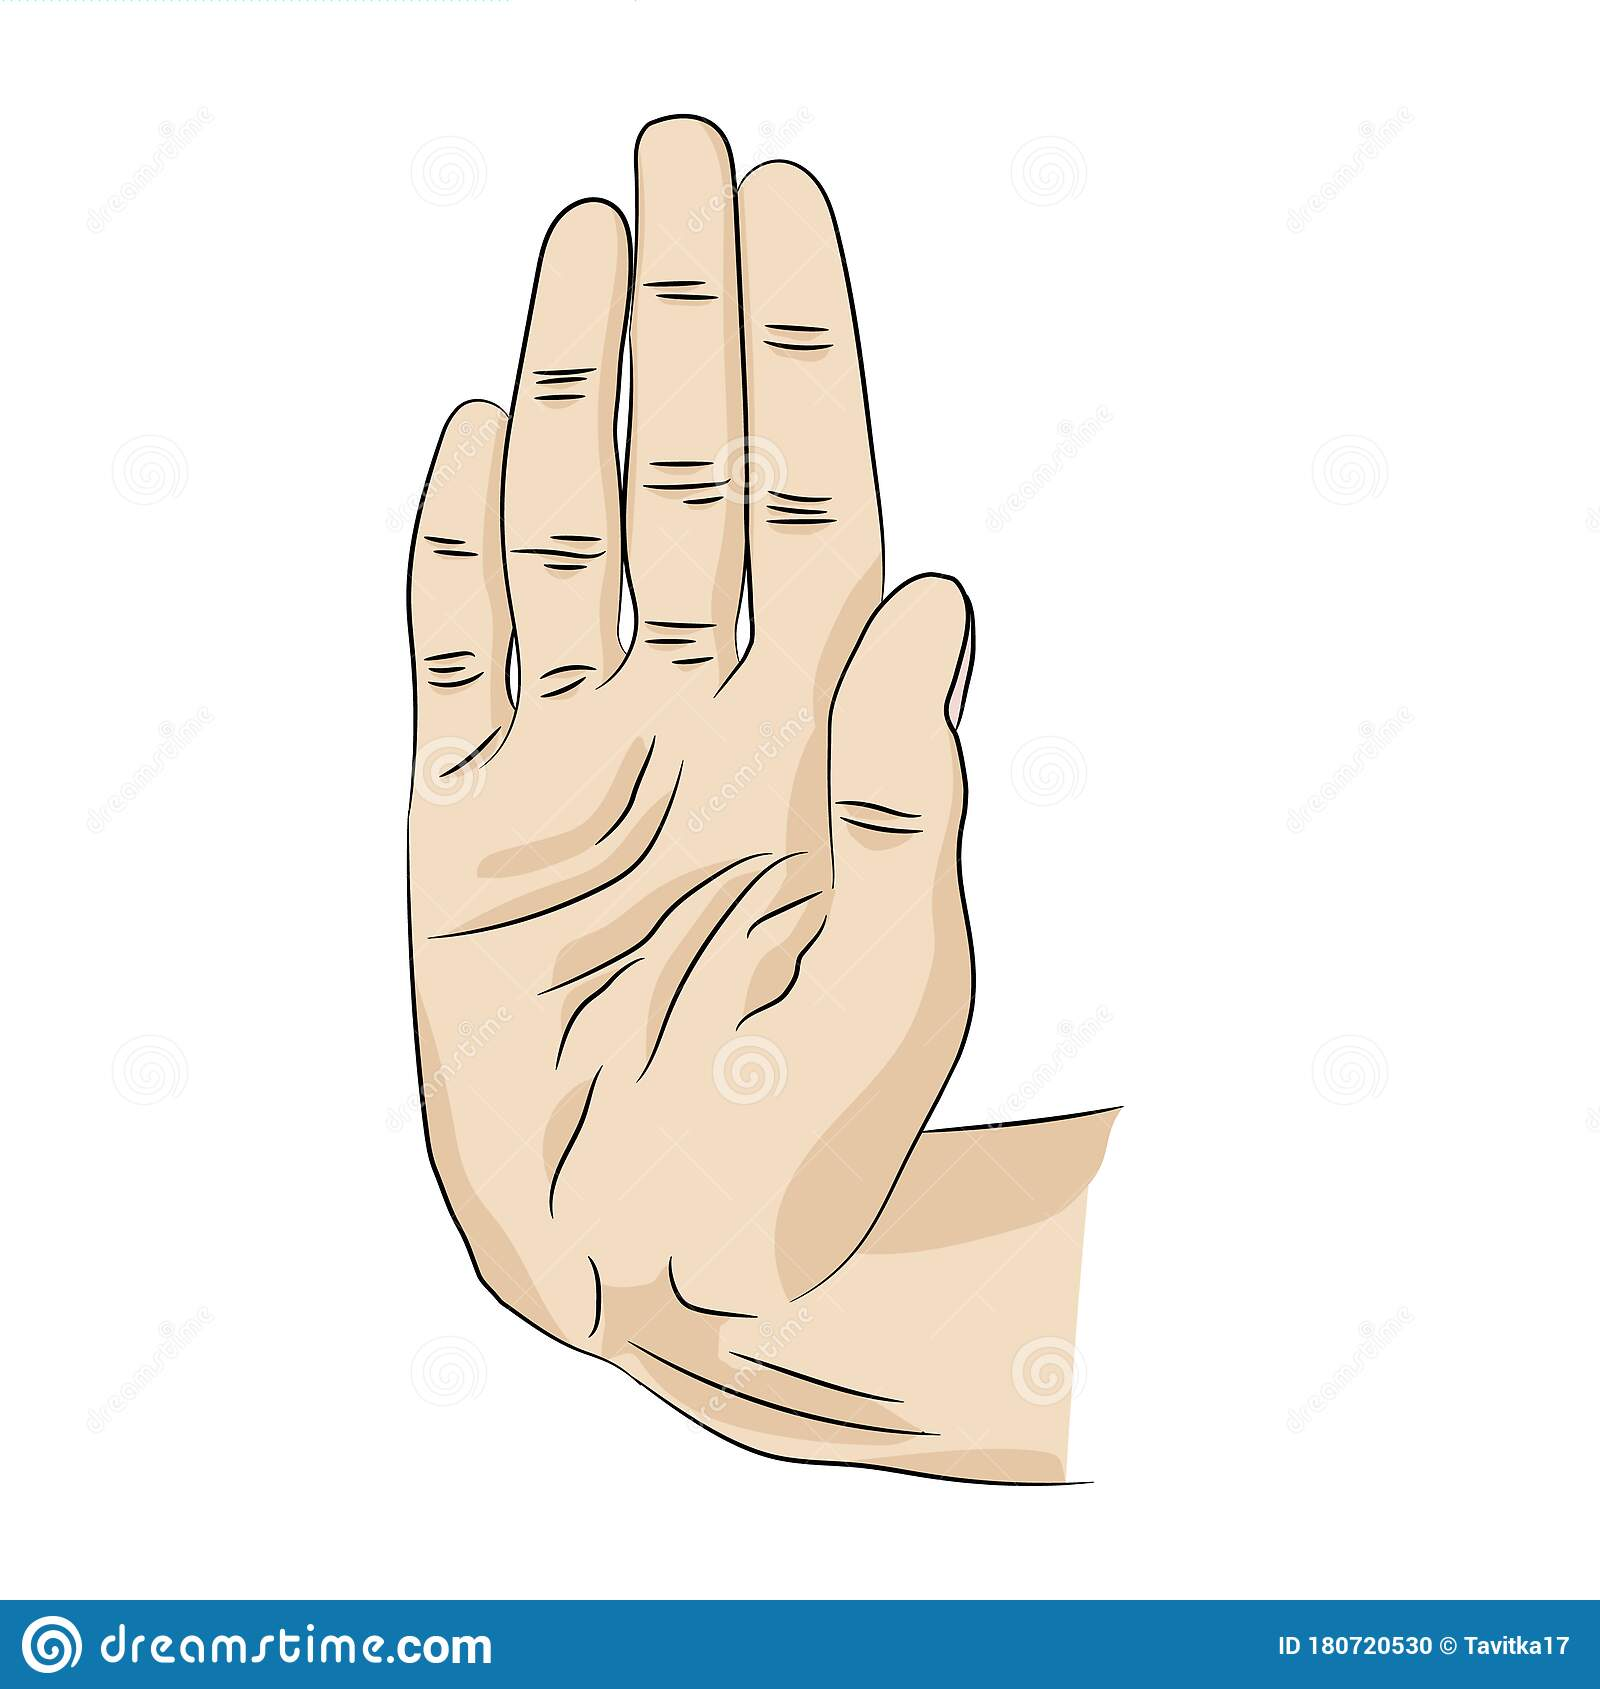 Holding paper, hand, paper, holding clipart png   PNGWing